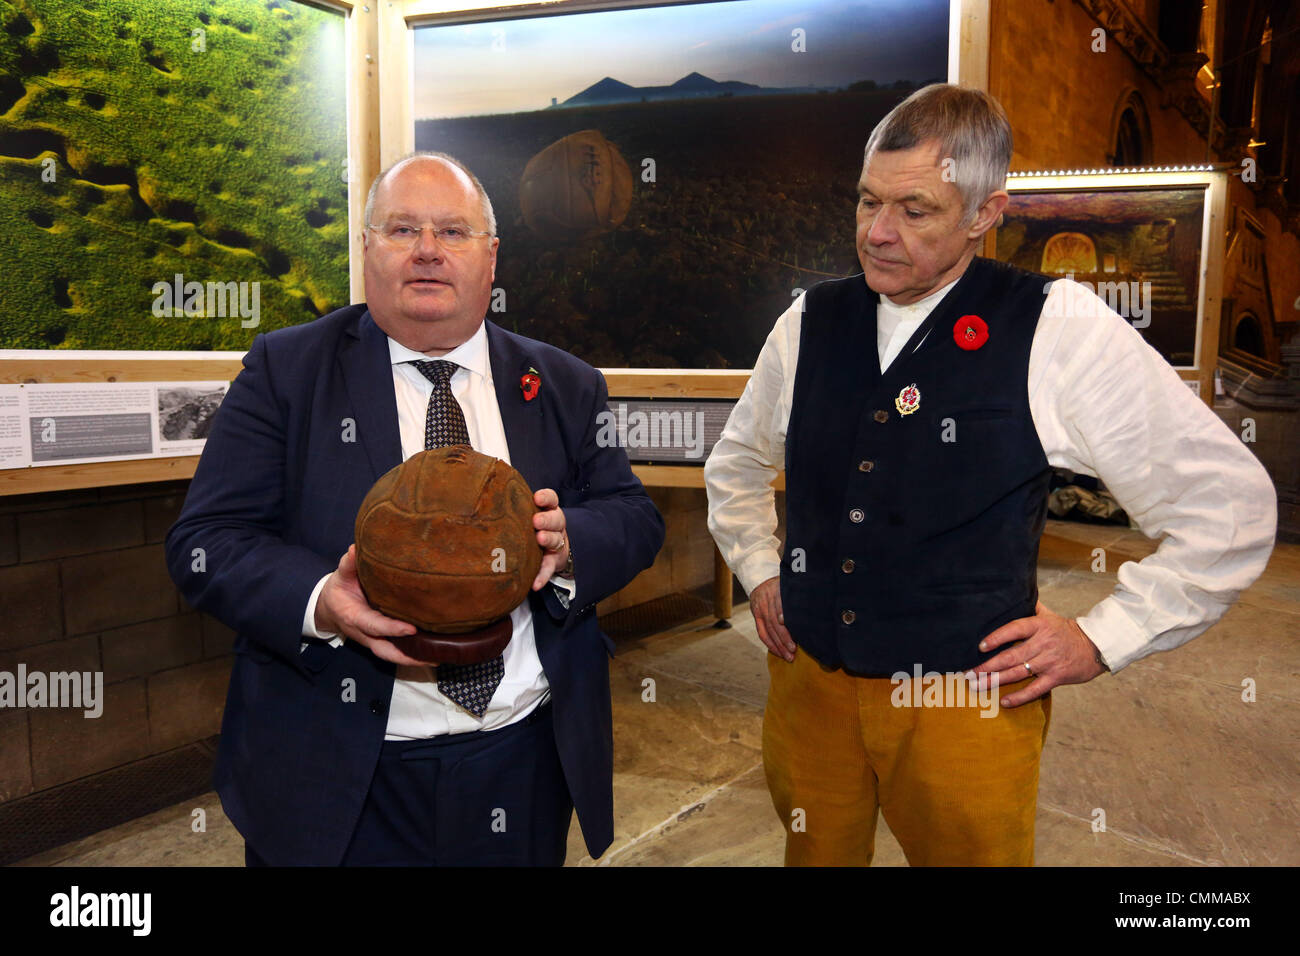 London, UK. 5th November 2013. Photographer Mike St. Maur Sheil with the Rt Hon Eric Pickles MP, Secretary of State Stock Photo